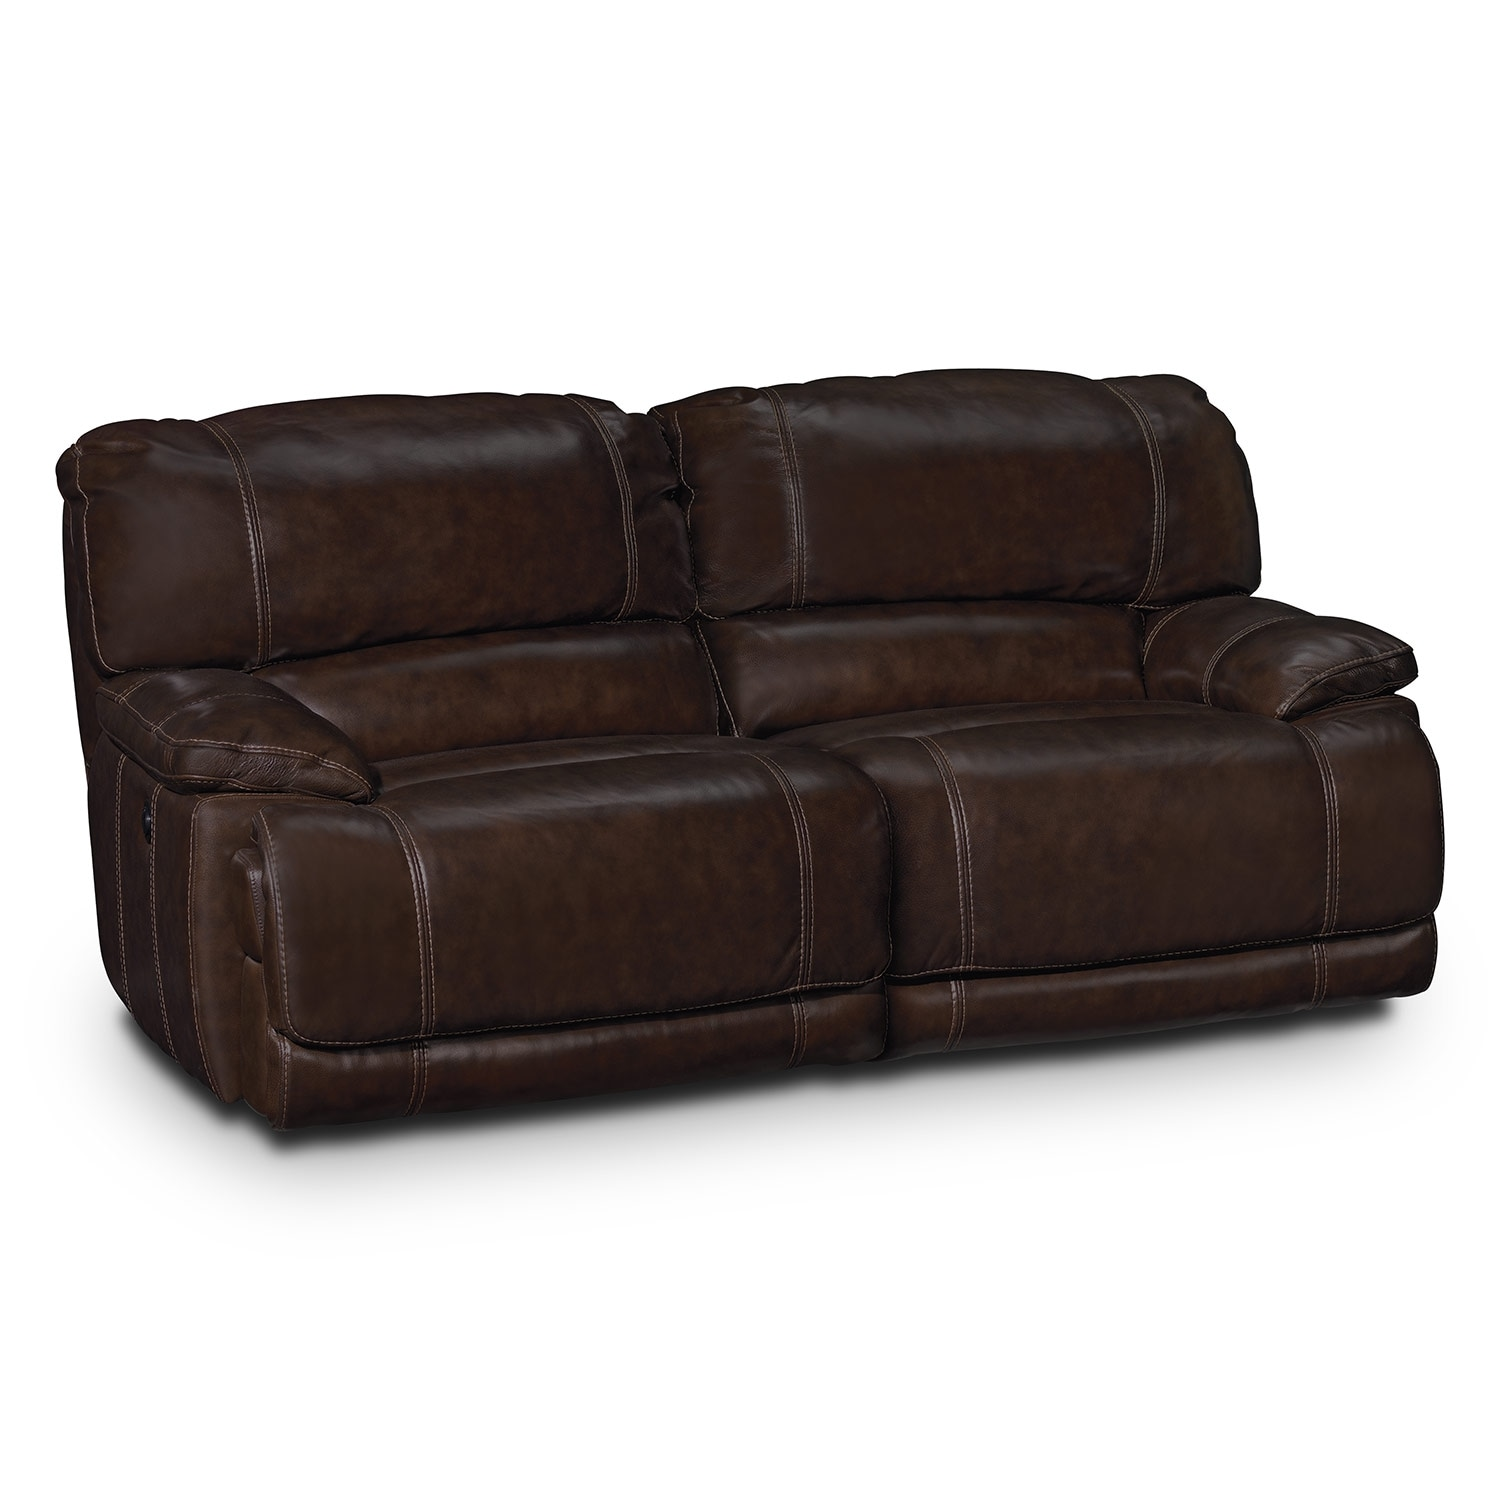 Power reclining leather sofa Power loveseat recliner